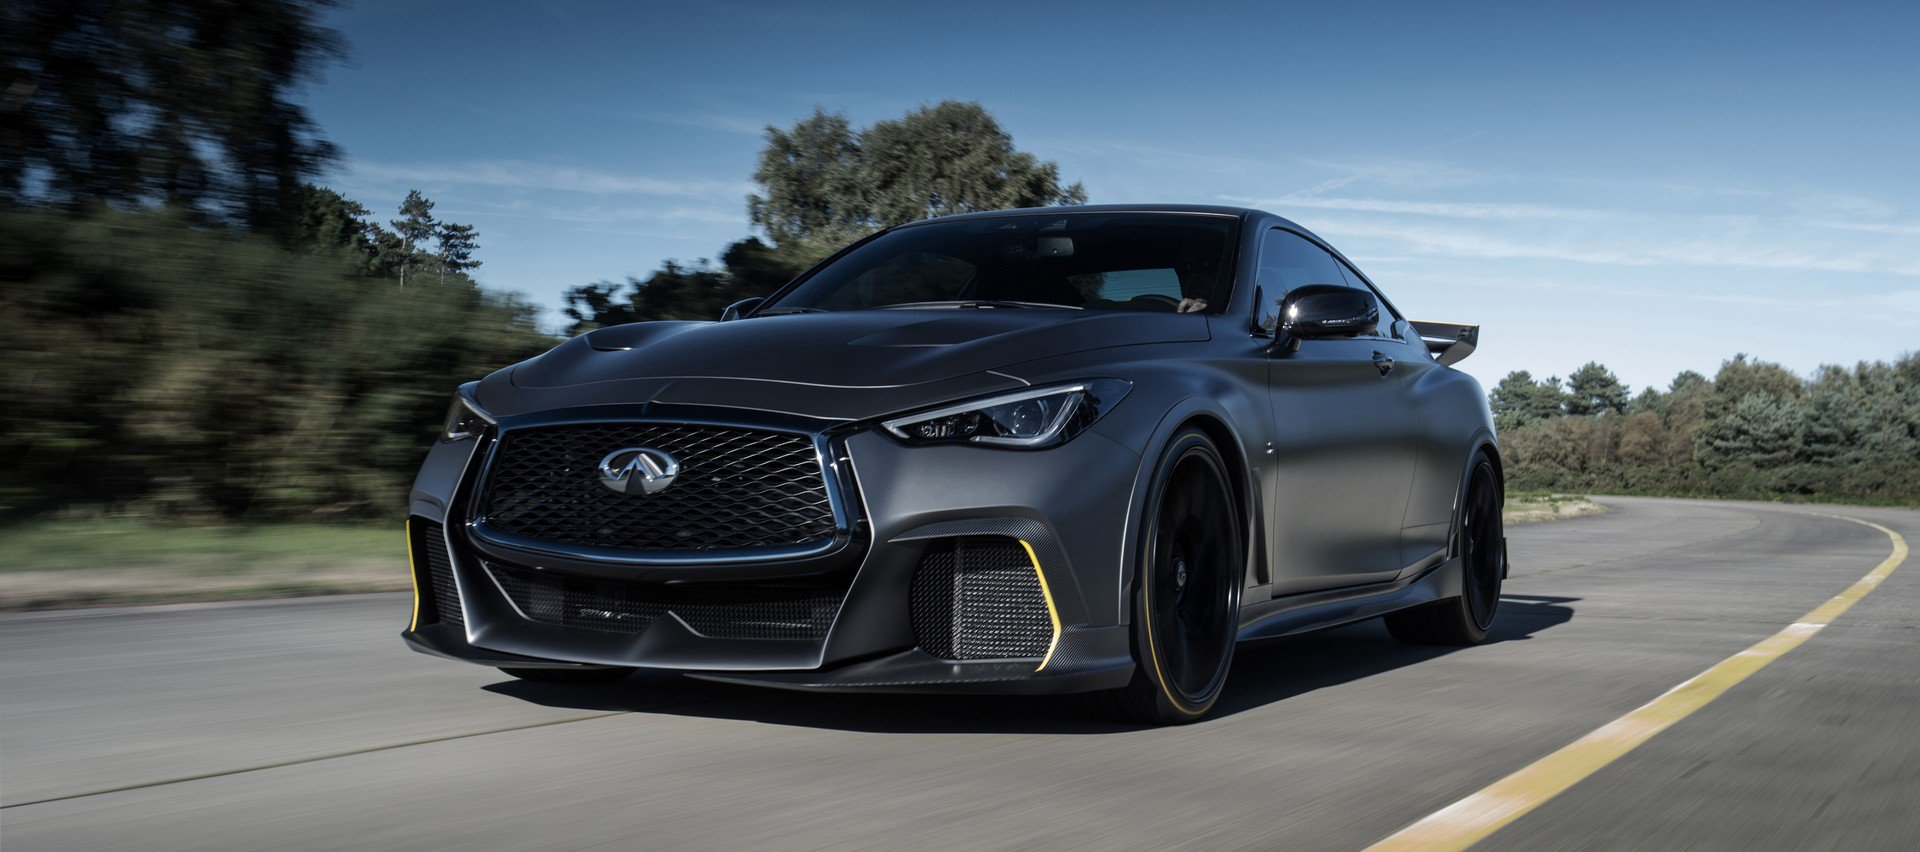 Infiniti Project Black S Prototype (34)